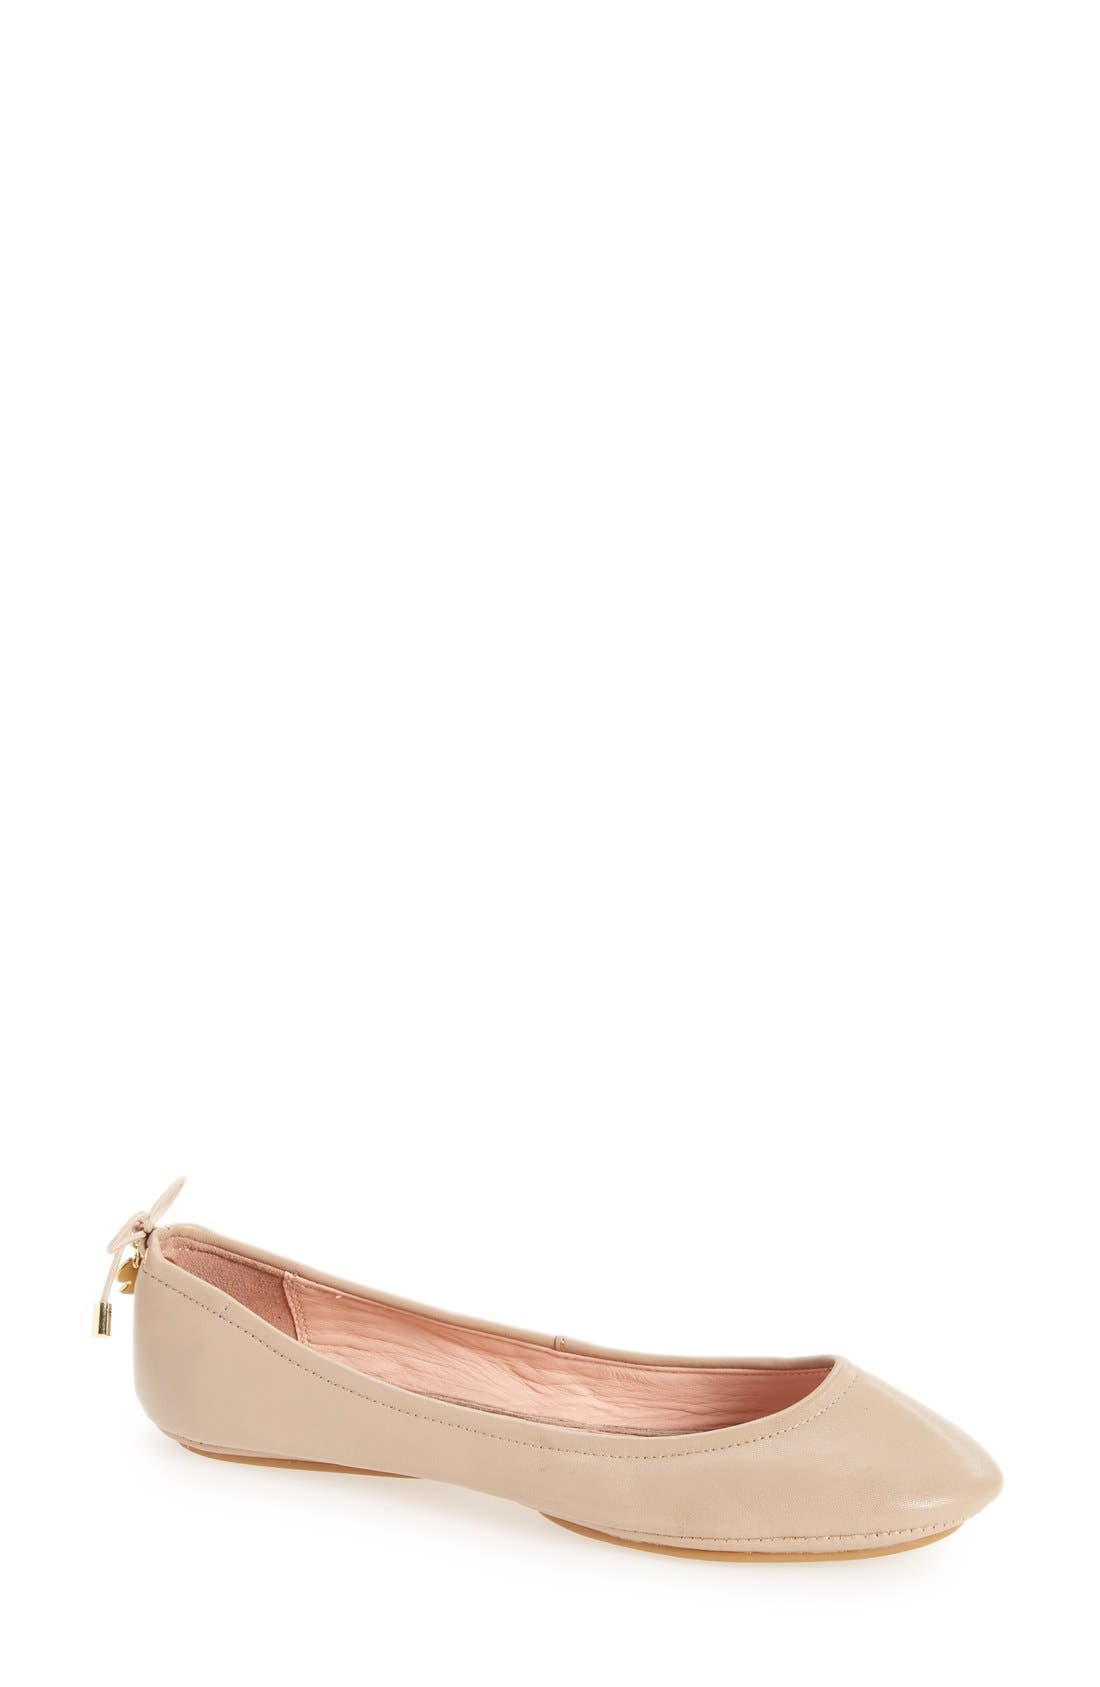 KATE SPADE NEW YORK globe foldable ballet flat